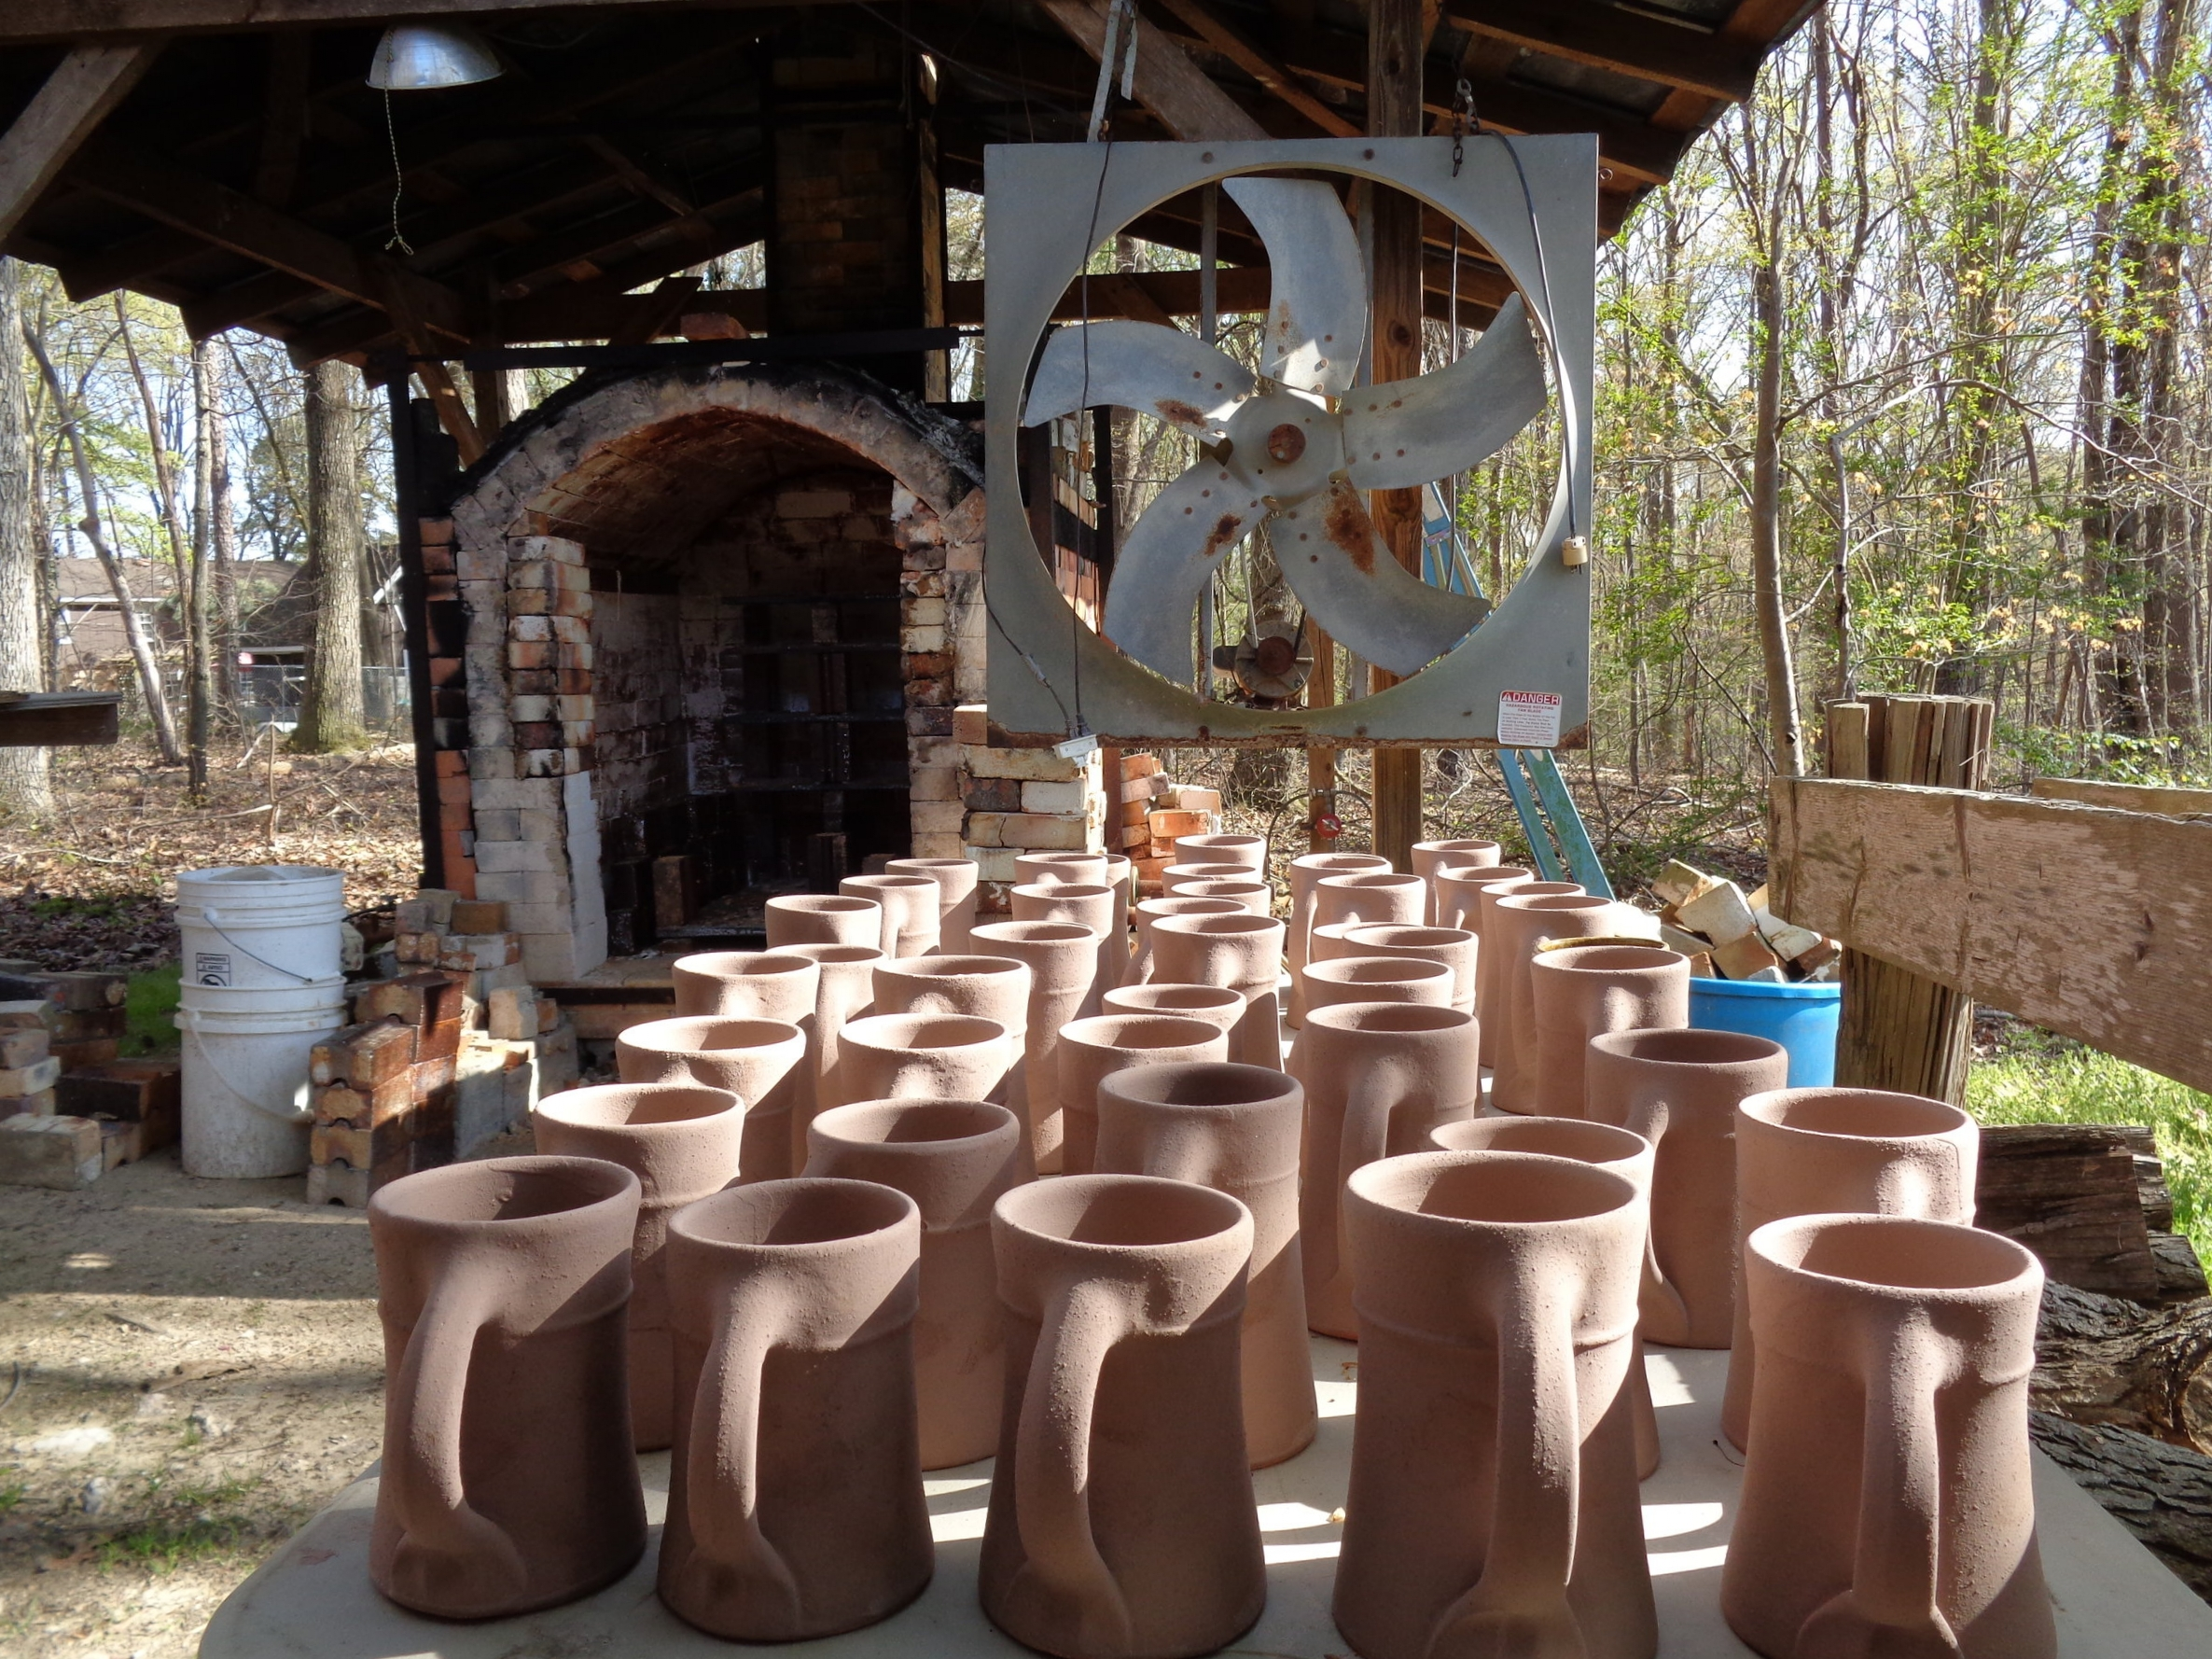 cb pots and kiln.JPG